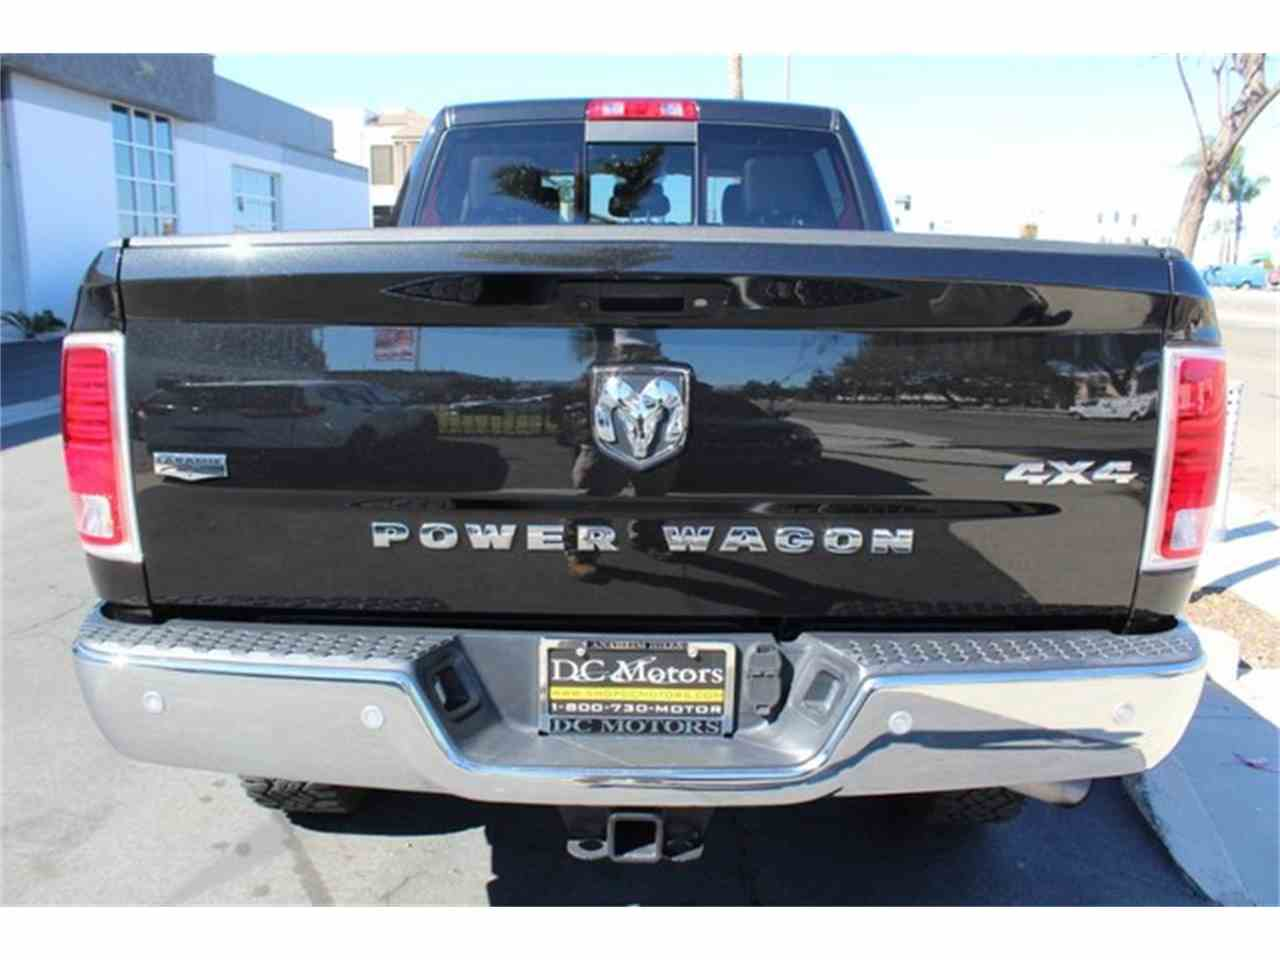 Large Picture of 2016 Dodge Ram 2500 located in California Offered by DC Motors - MZ7B